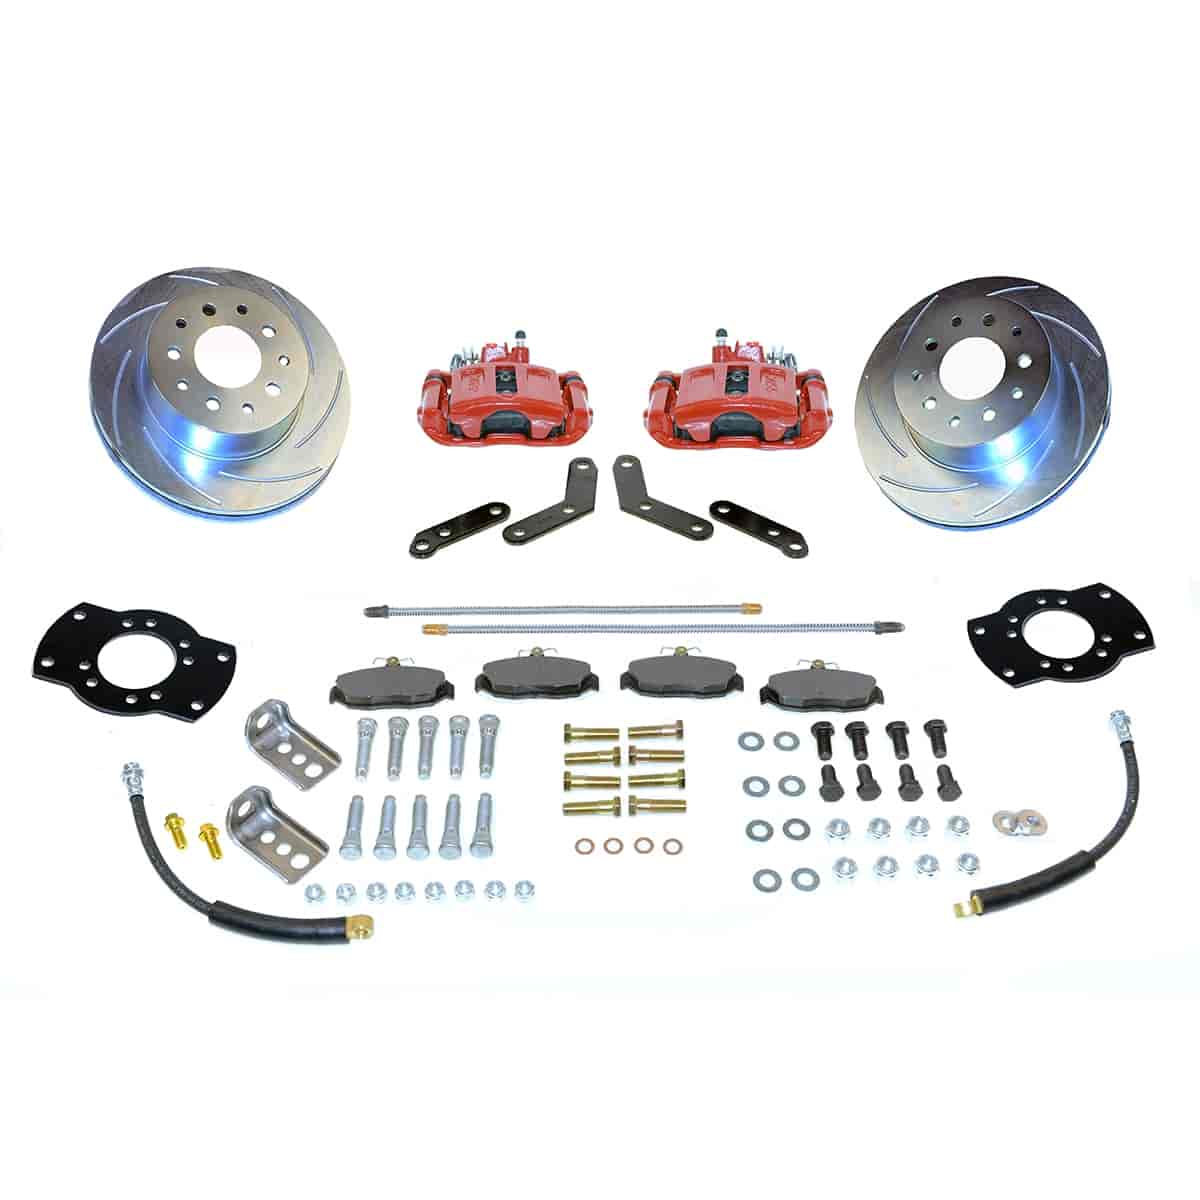 Stainless Steel Brakes A125-2R - Stainless Steel Brakes Single Piston Rear Disc Brake Conversion Kit